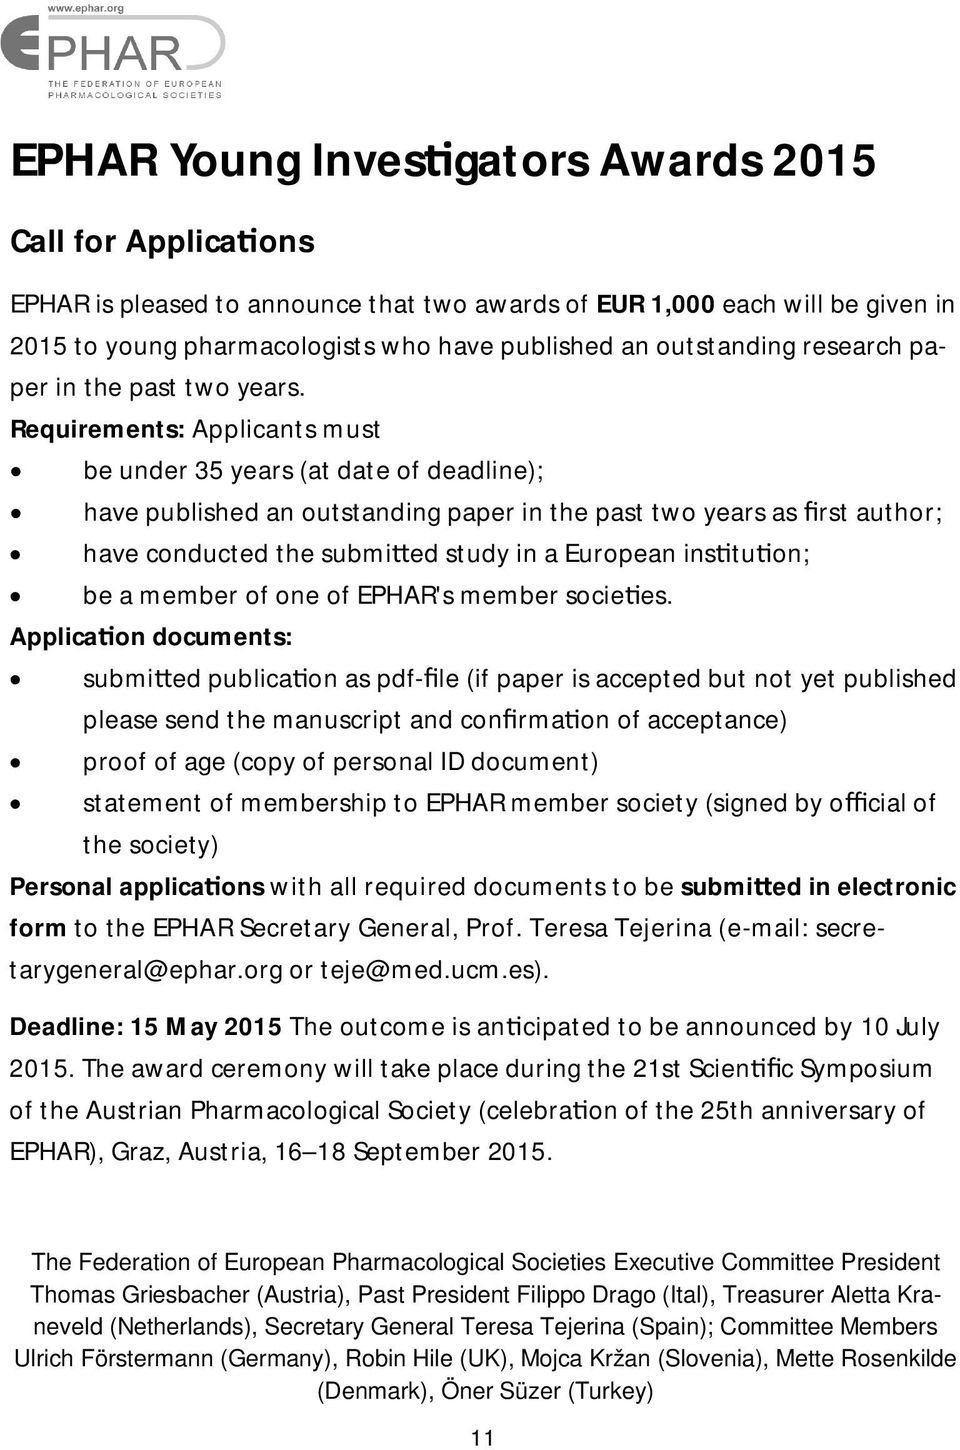 Requirements: Applicants must be under 35 years (at date of deadline); have published an outstanding paper in the past two years as rst author; have conducted the submi ed study in a European ins tu